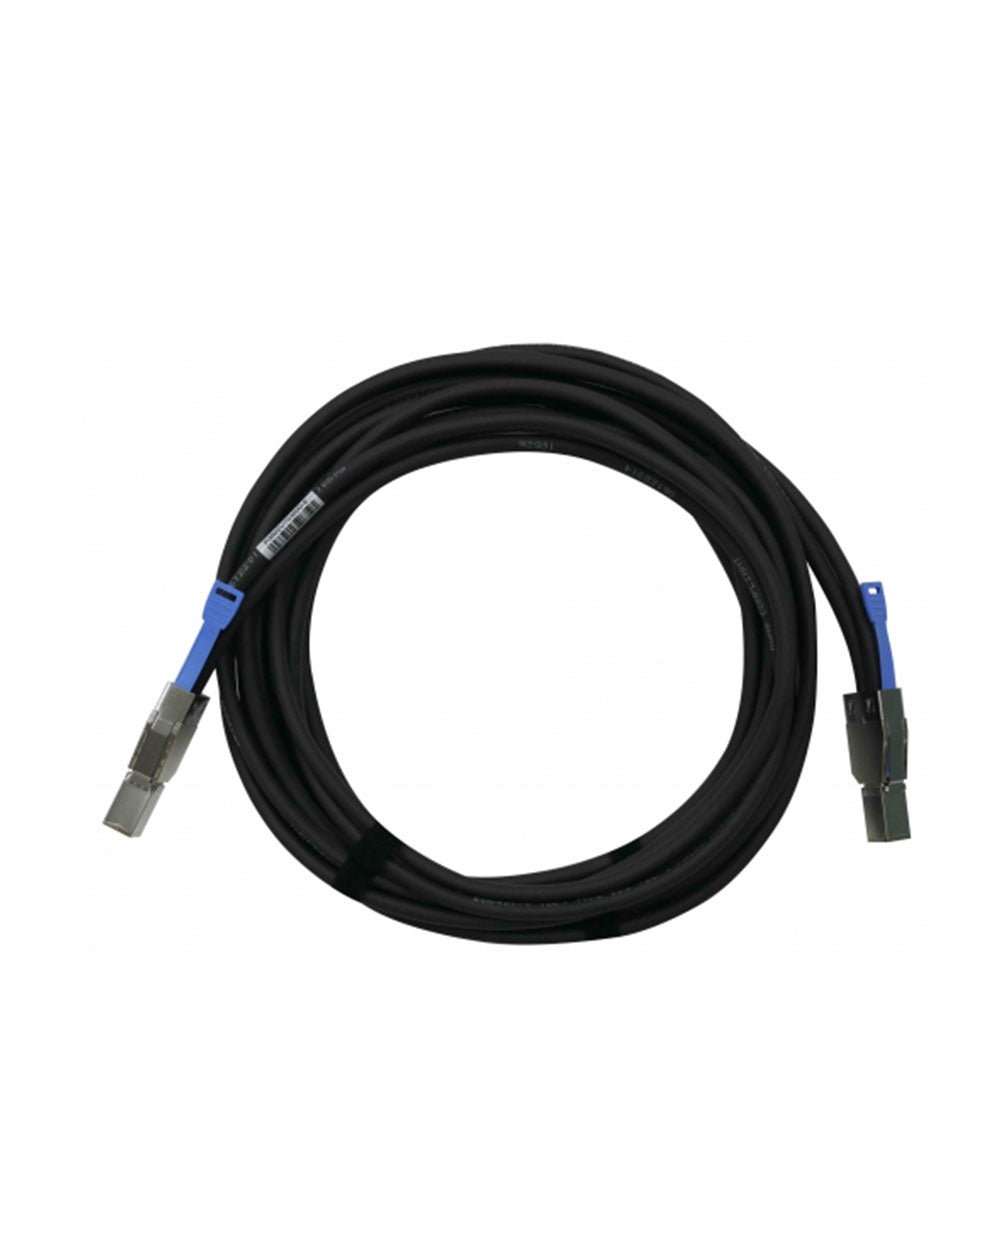 QNAP mini SAS cable (3.0M, SFF-8644)